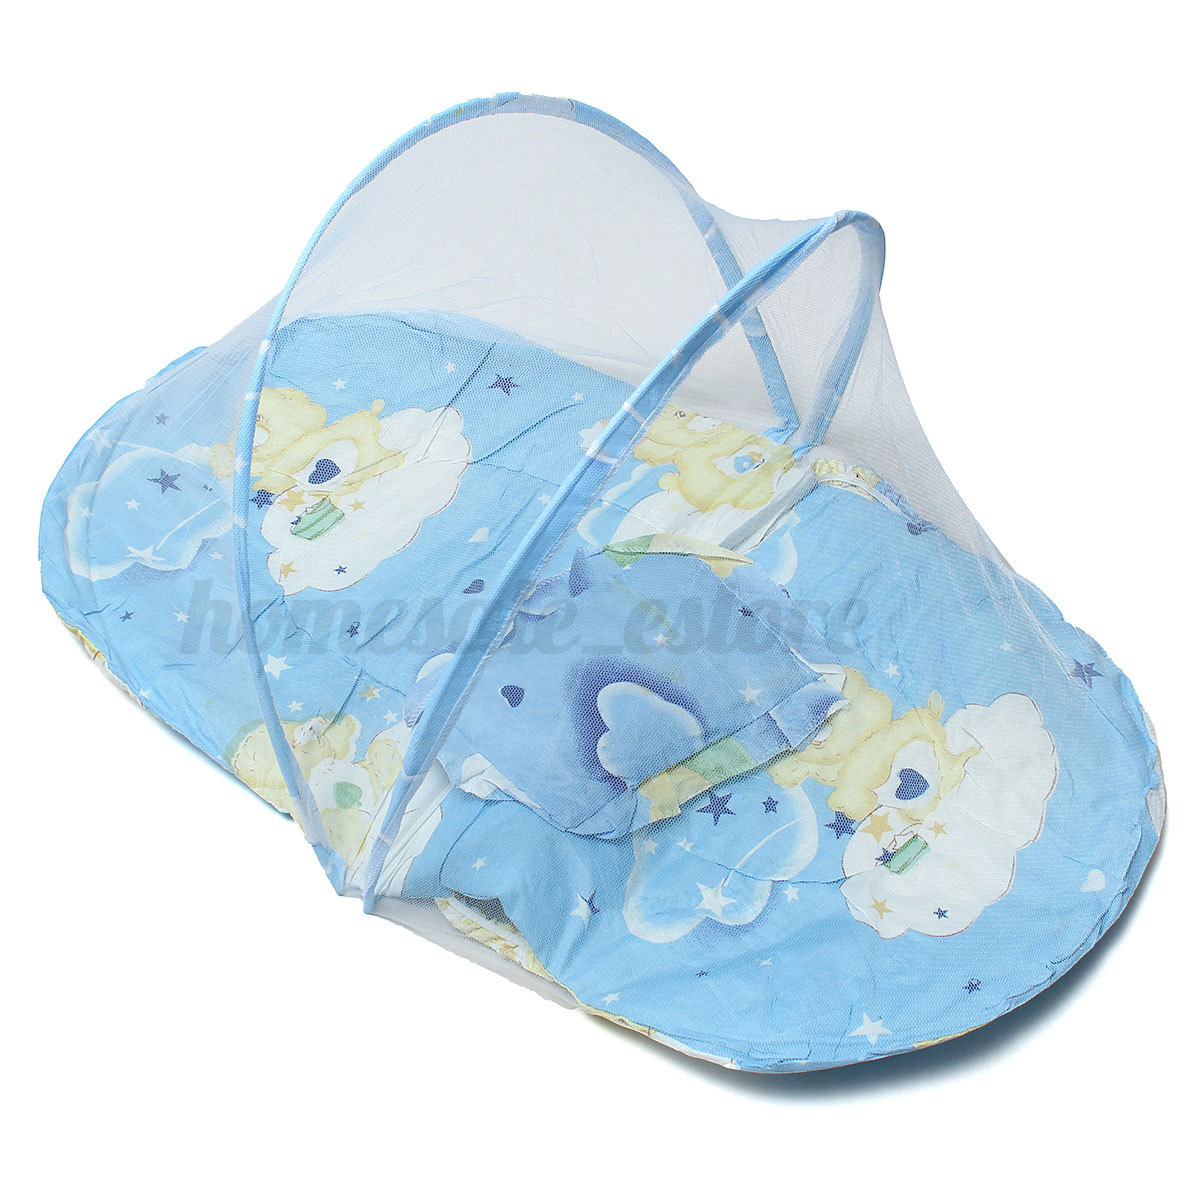 New Portable Foldable Baby Mosquito Tent Travel Infant Bed